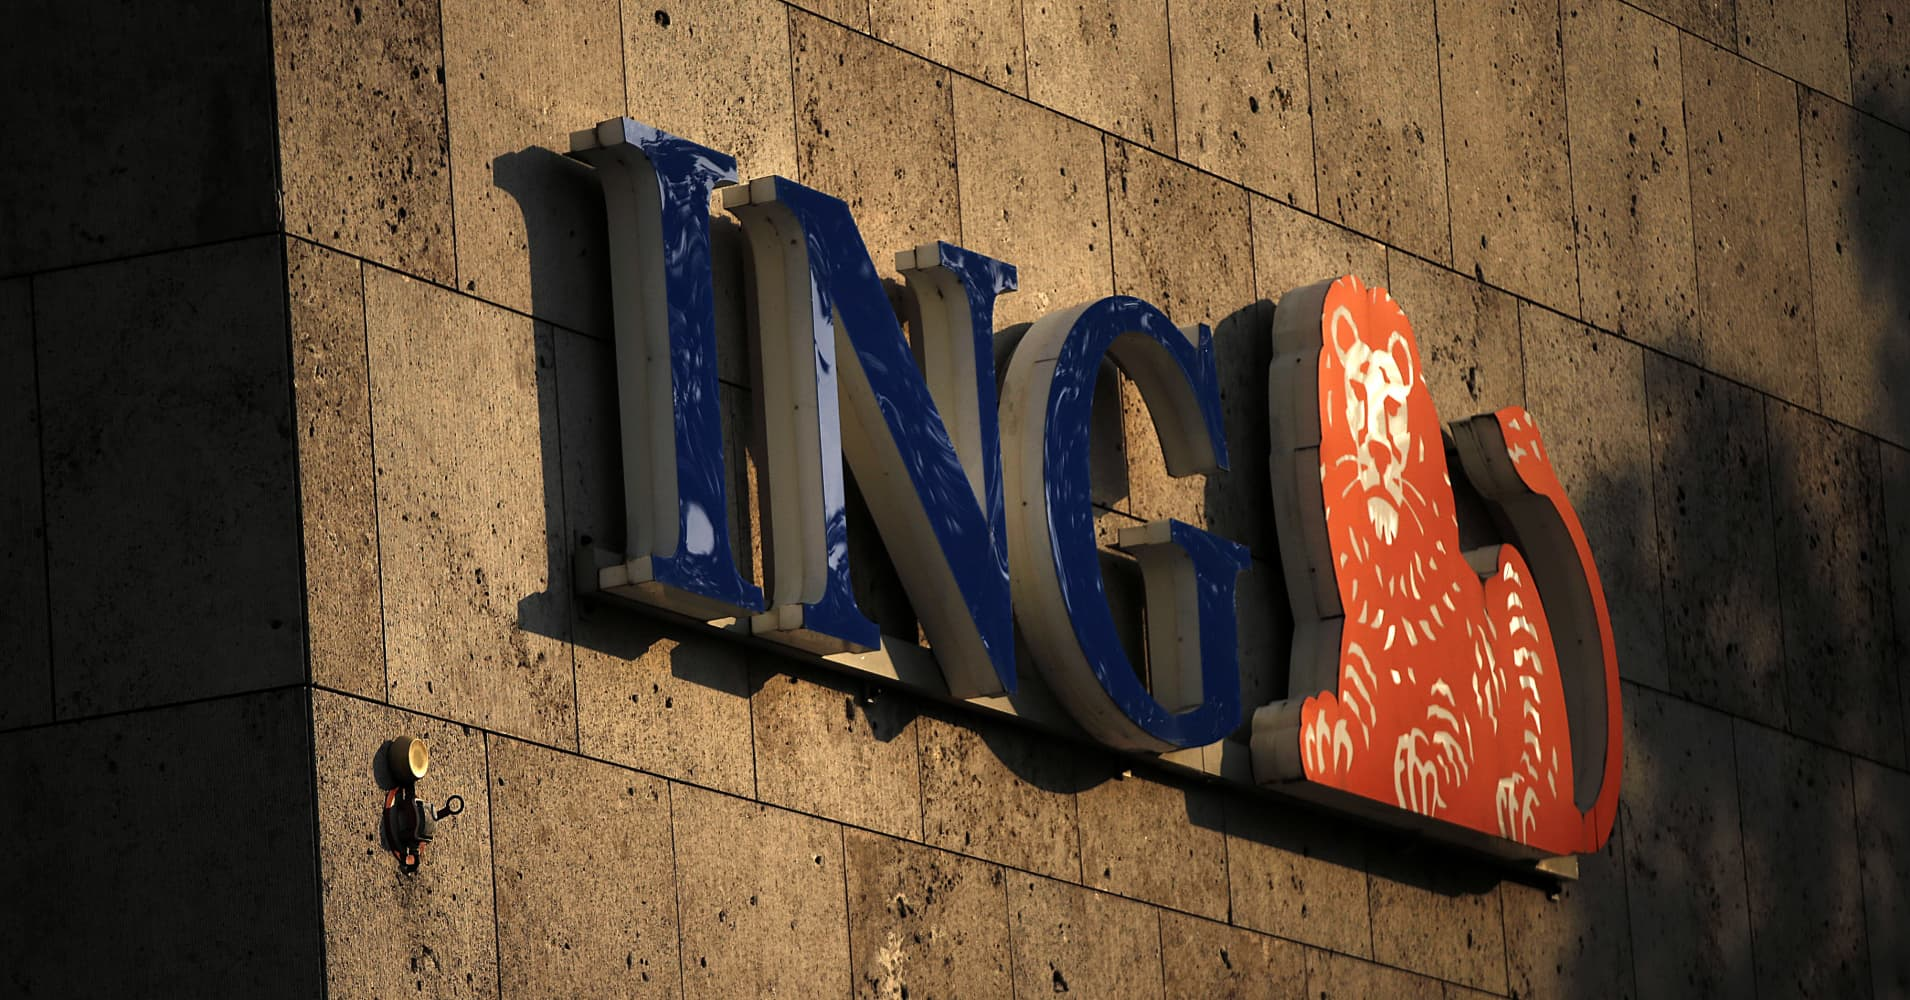 ING CFO Timmermans to step down after $900 million money laundering fine